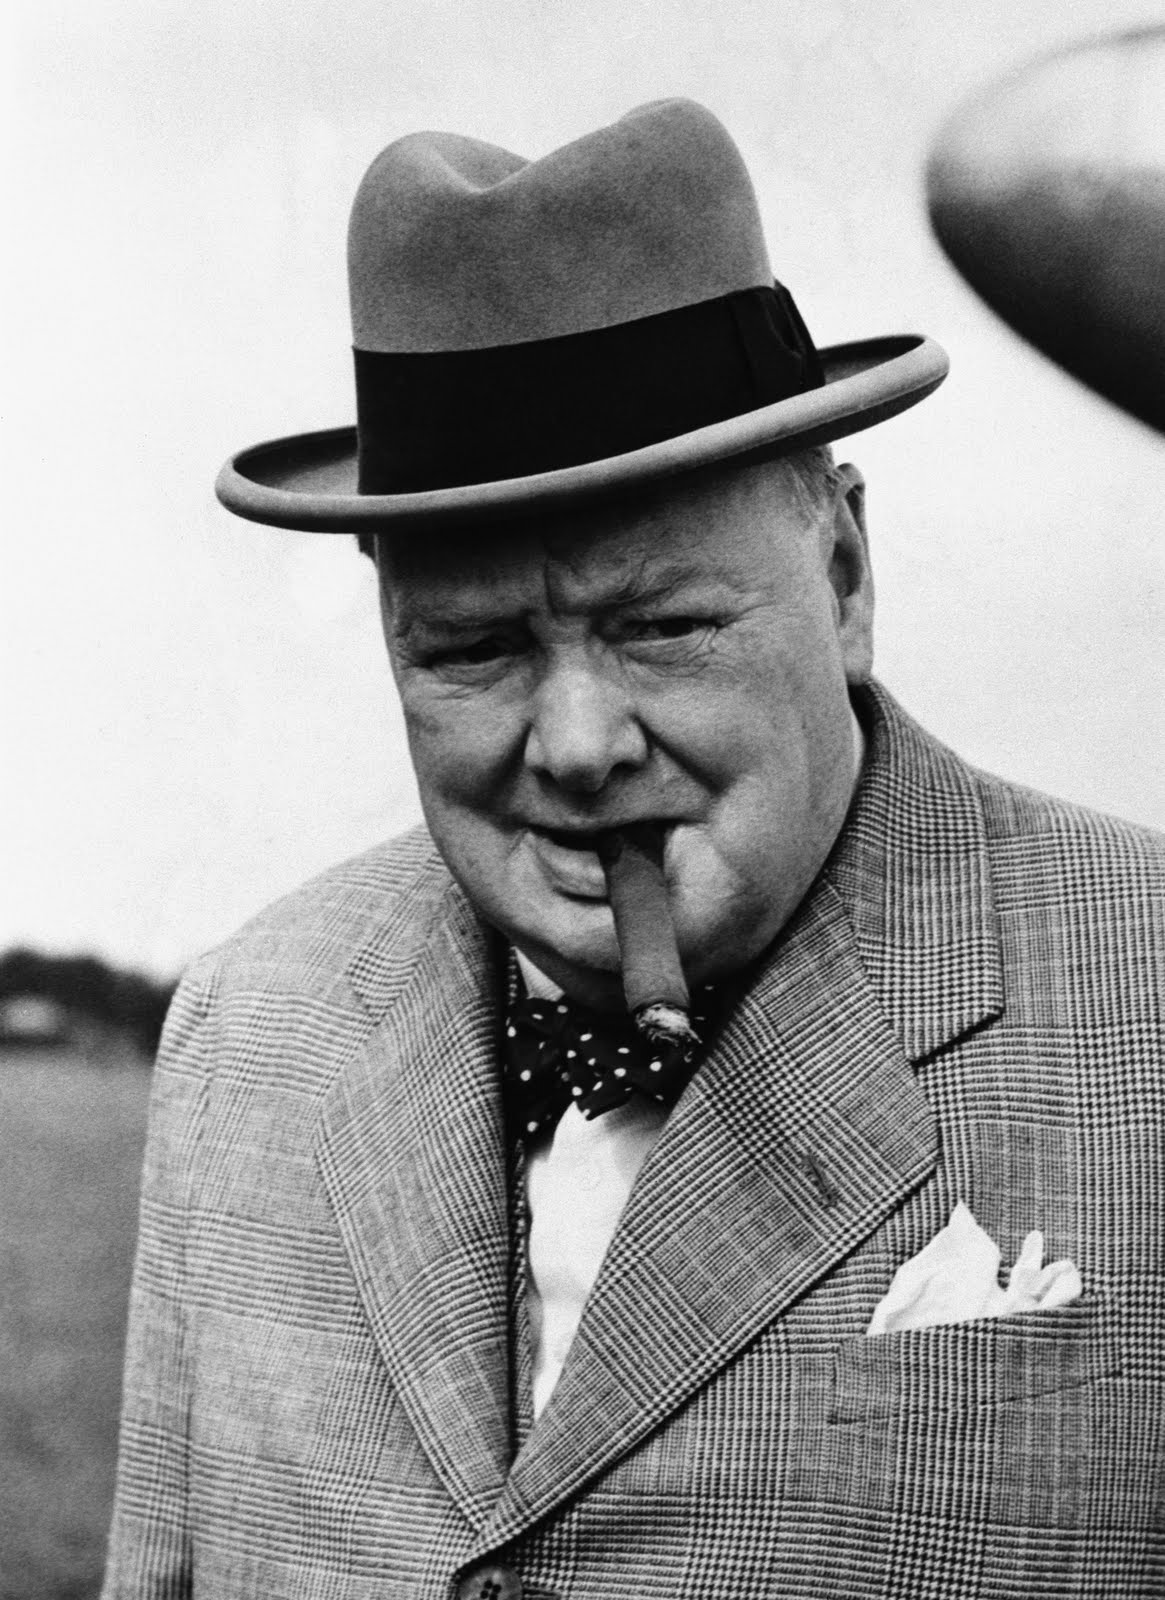 A biography and life work of the sir winston churchill an english prime minister